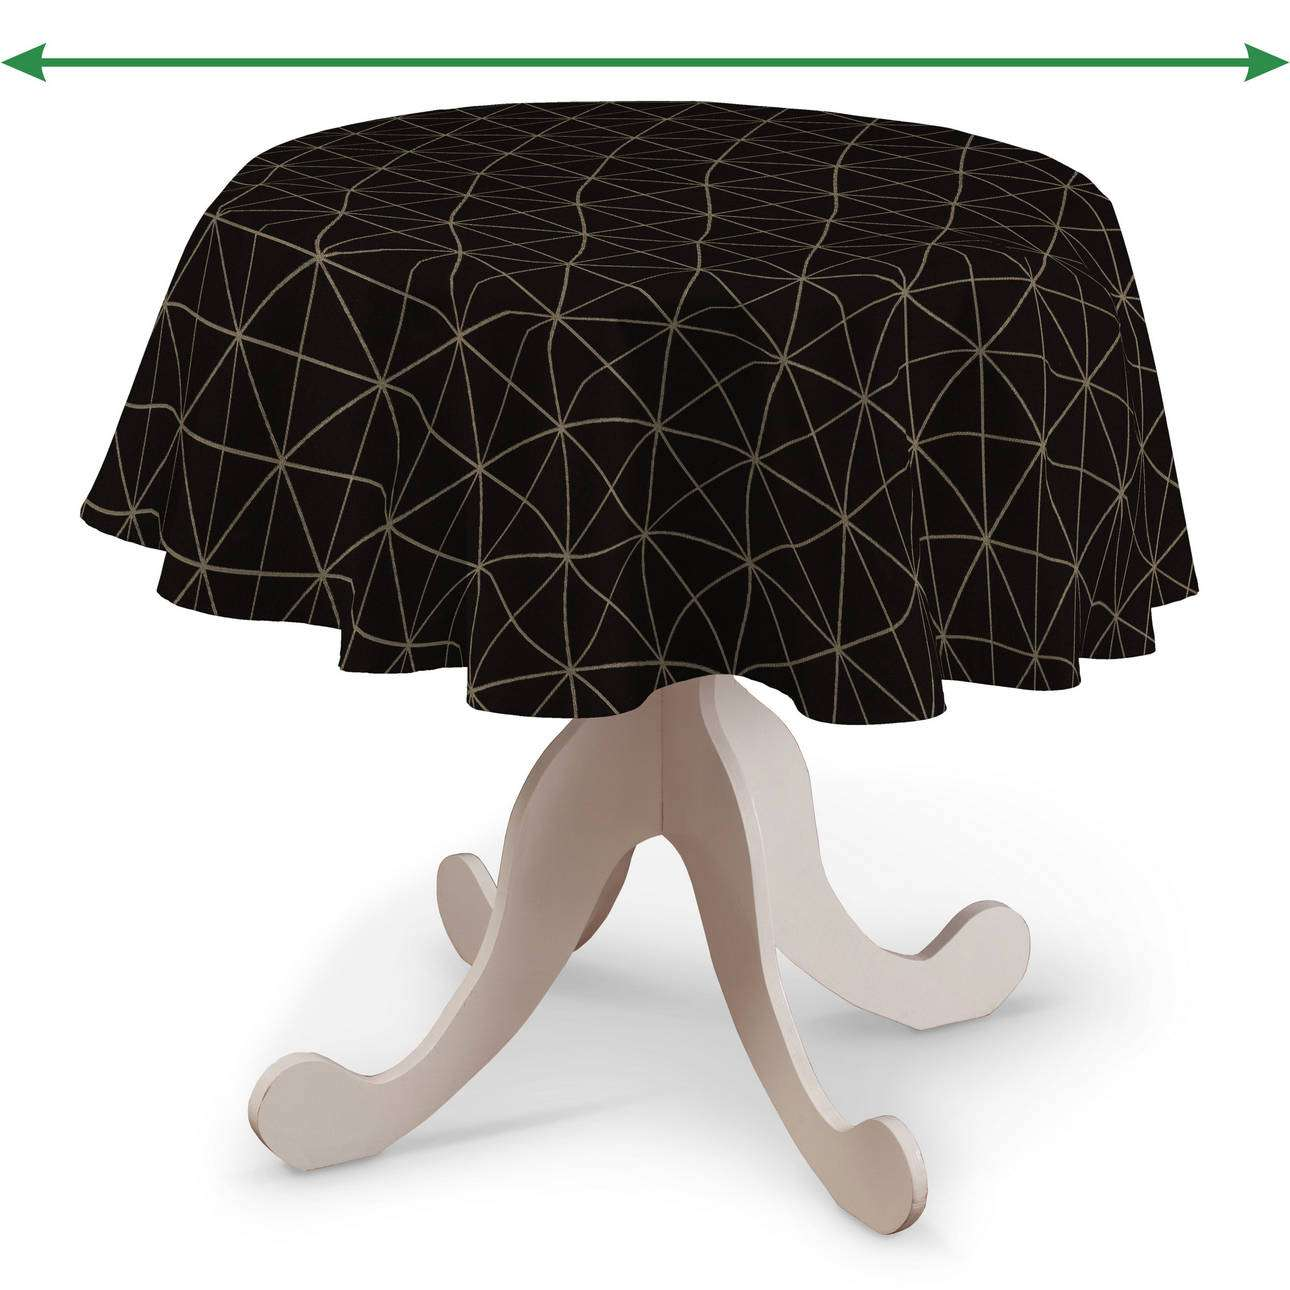 Round tablecloth in collection Black & White, fabric: 142-55